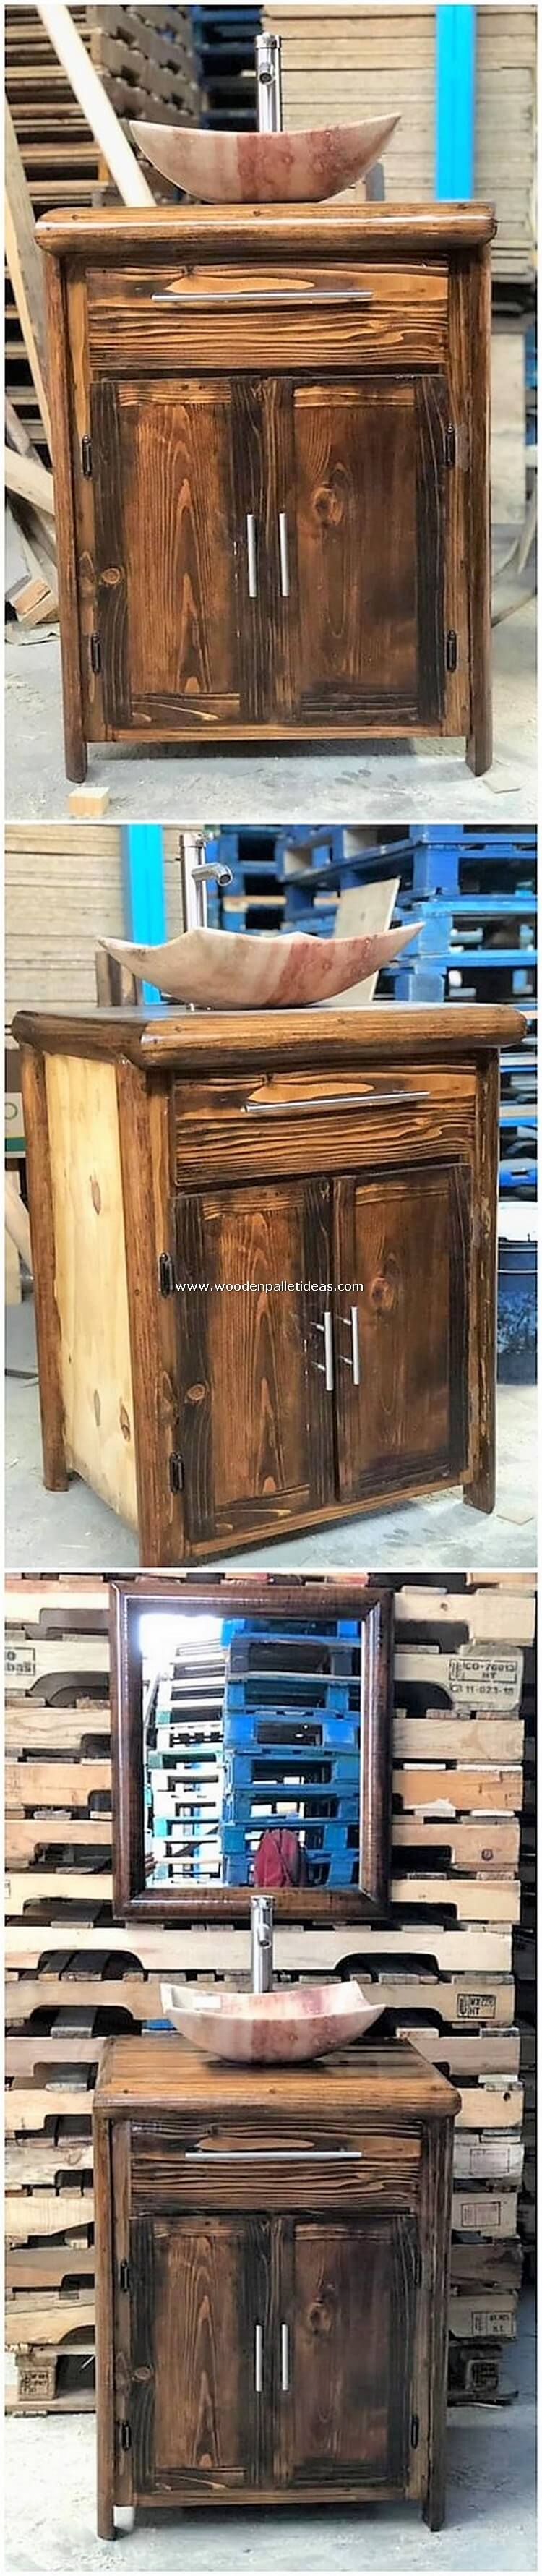 Wooden Pallet Sink with Cabinet